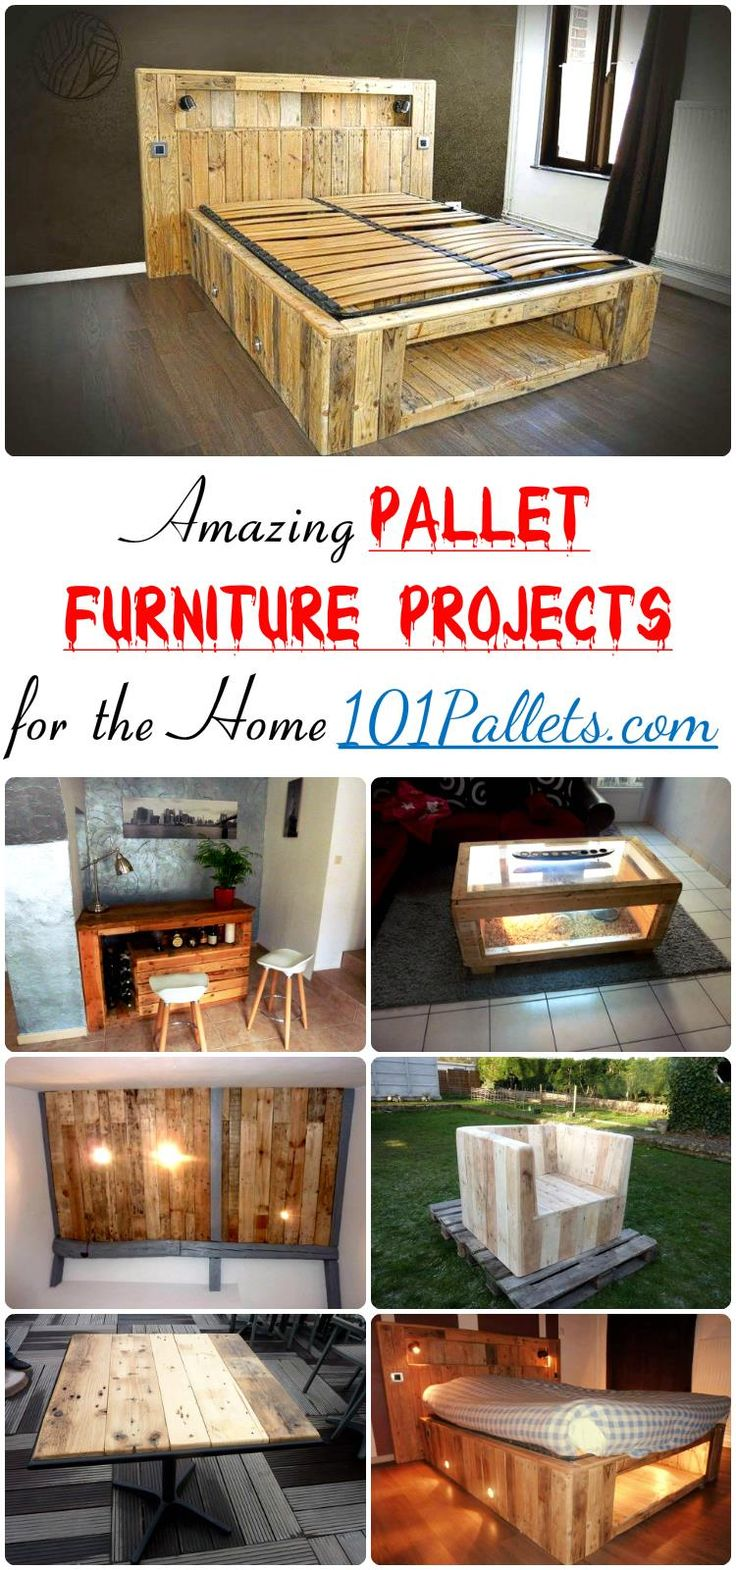 Amazing Pallet Furniture Projects for Home | 101 Pallets - Pallet furniture…